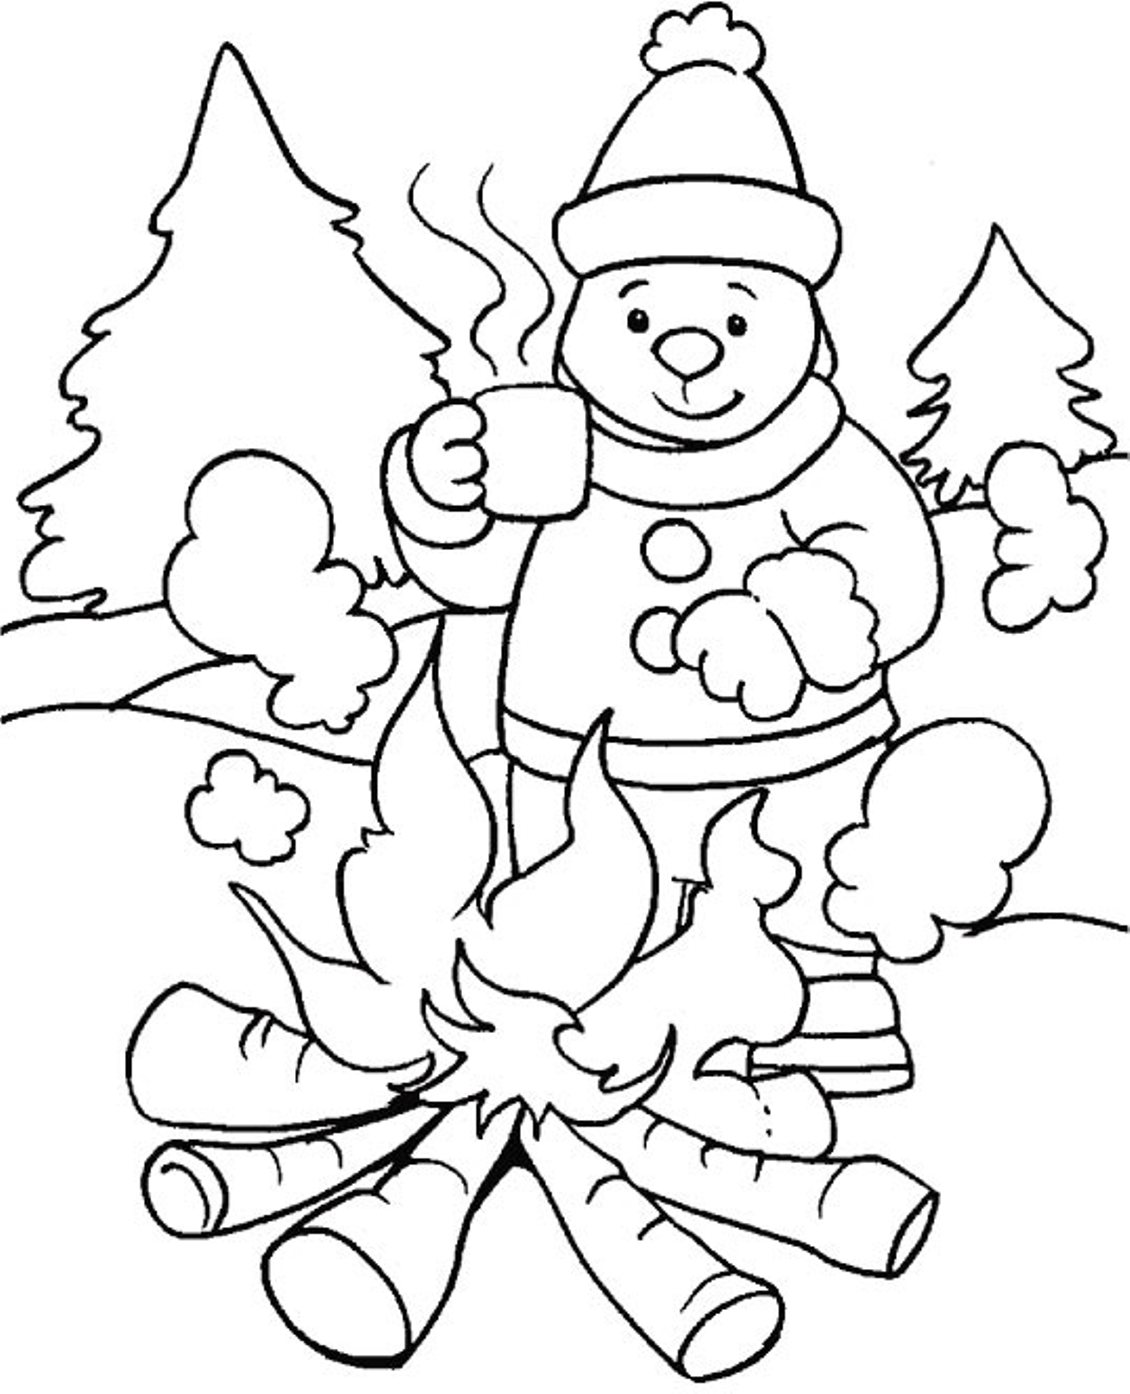 graphic about Free Printable Winter Coloring Pages titled Cost-free Printable Wintertime Coloring Webpages For Little ones